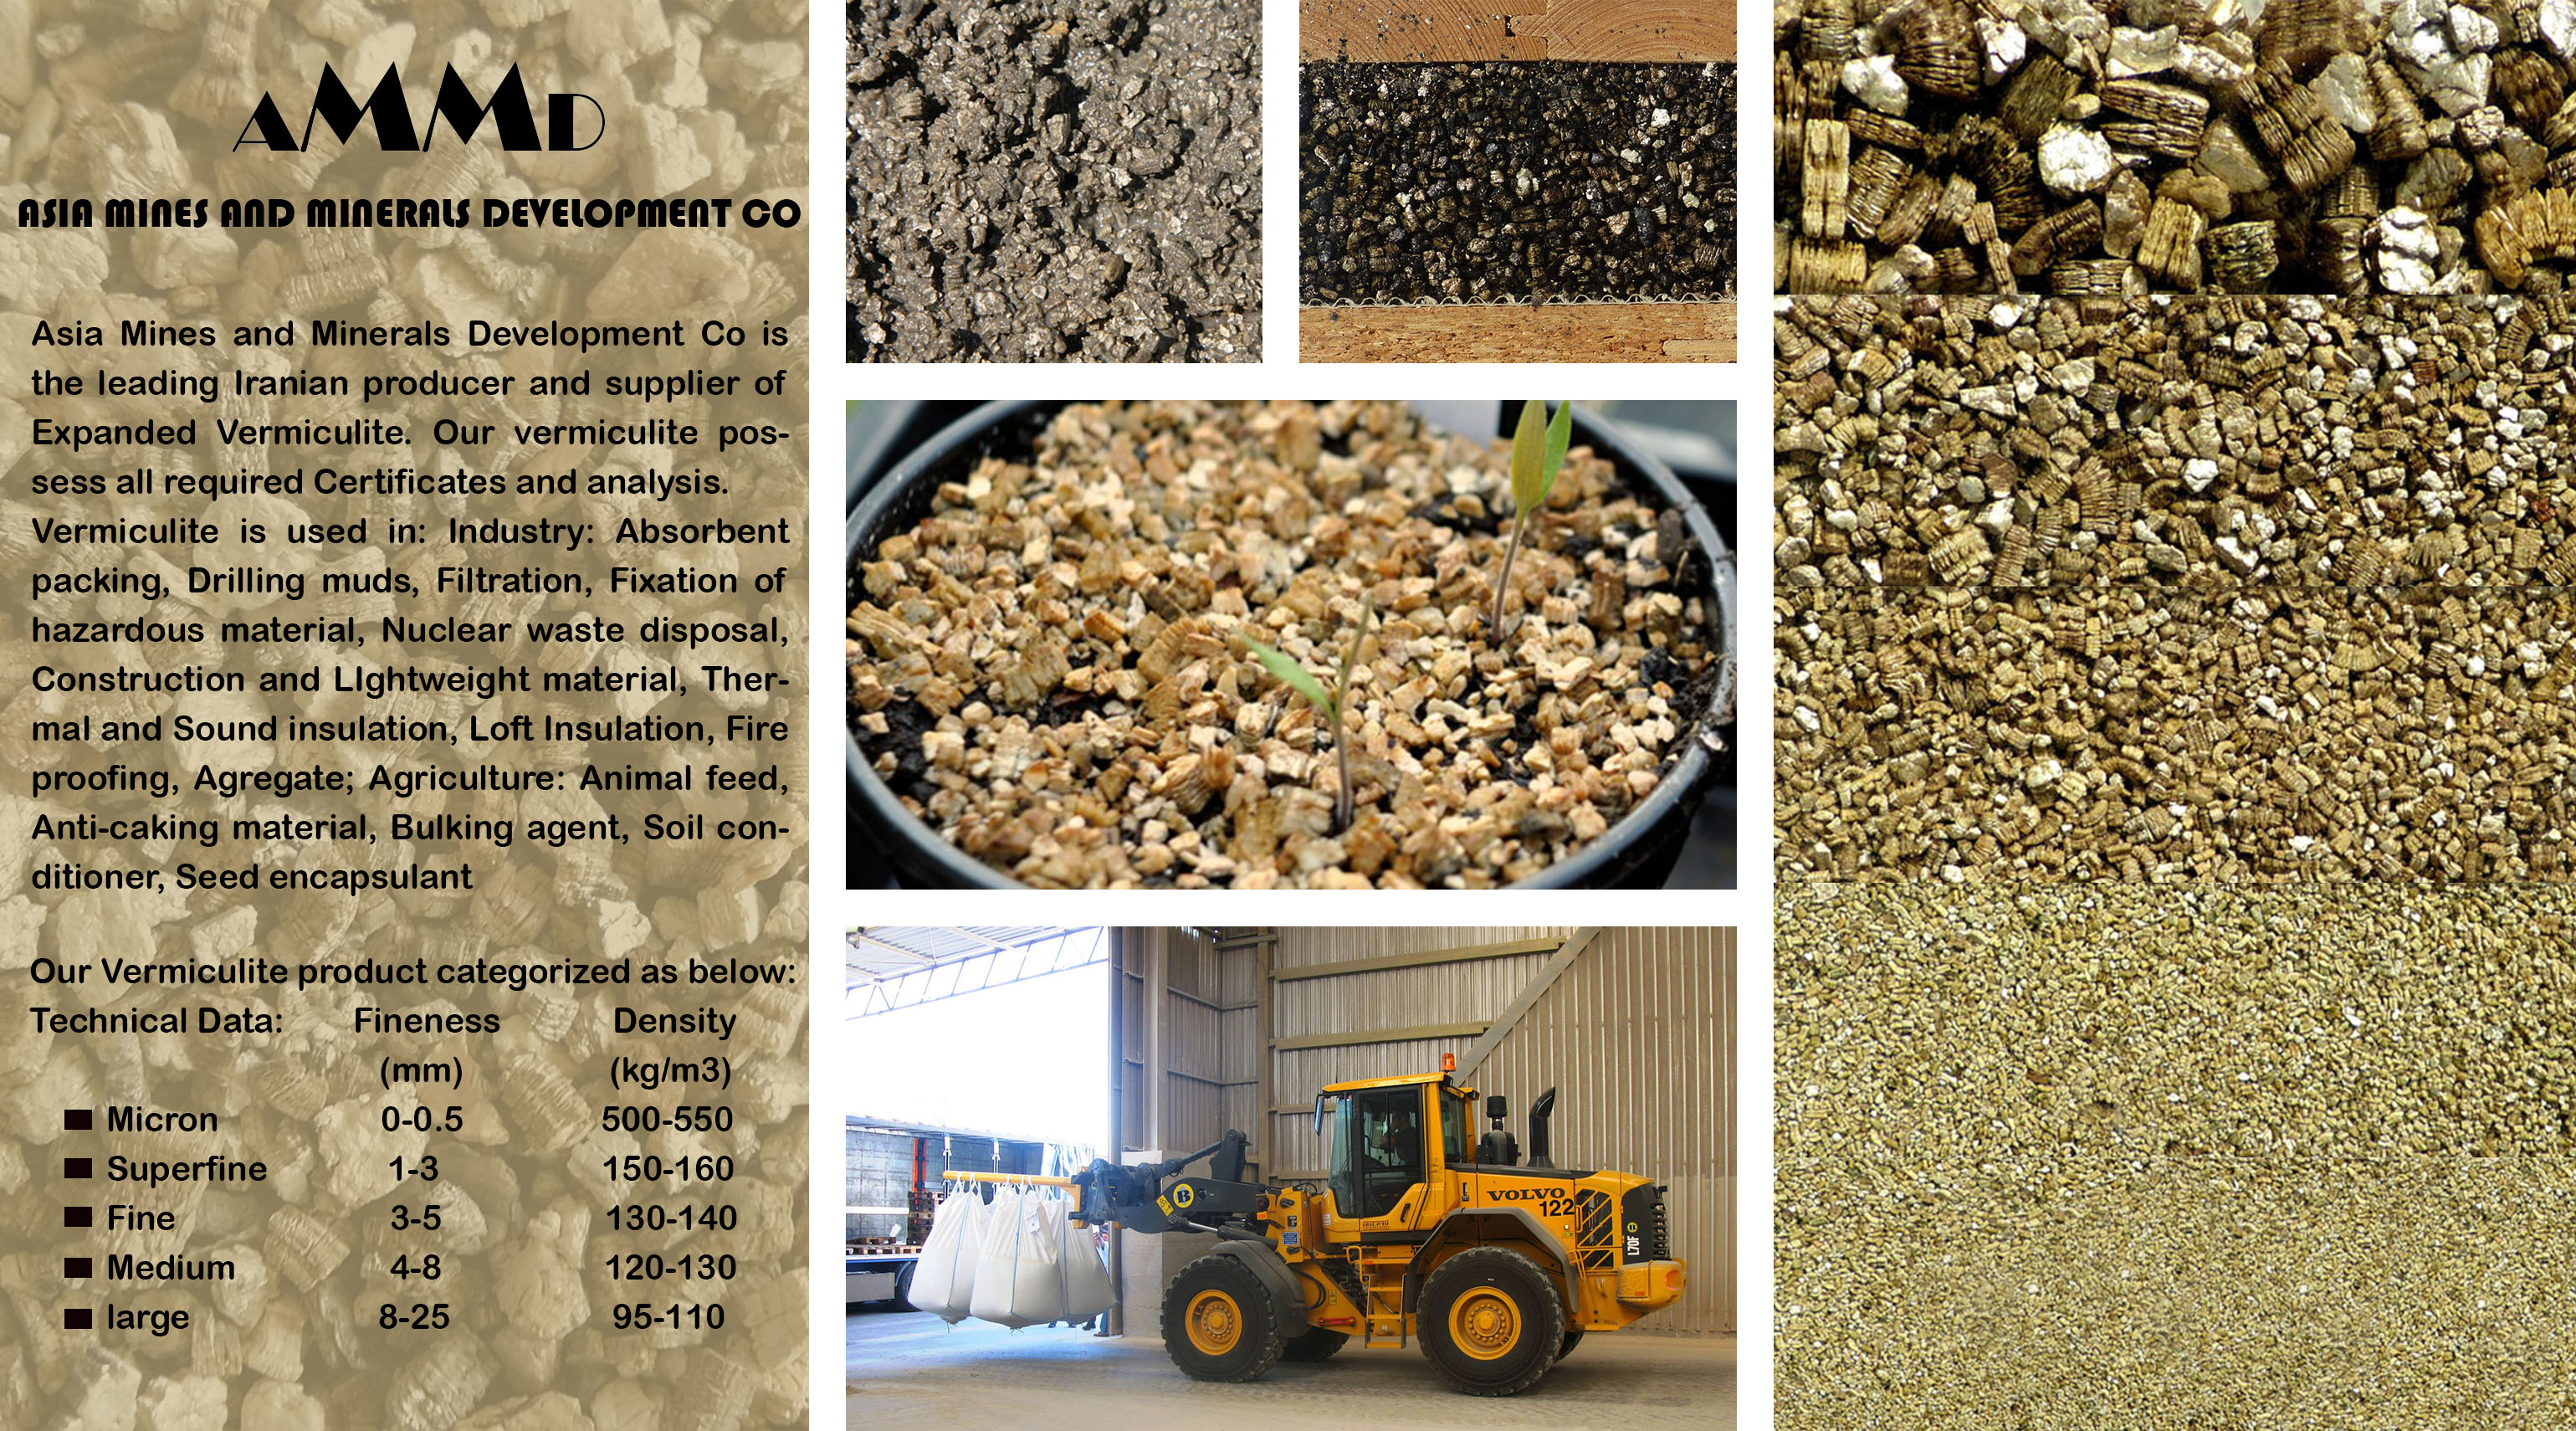 vermiculite Asia Mines and Minerals Development Co is the leading Iranian producer and supplier of Expanded Vermiculite. Our vermiculite possess all required Certificates and analysis. raw vermiculite export iran